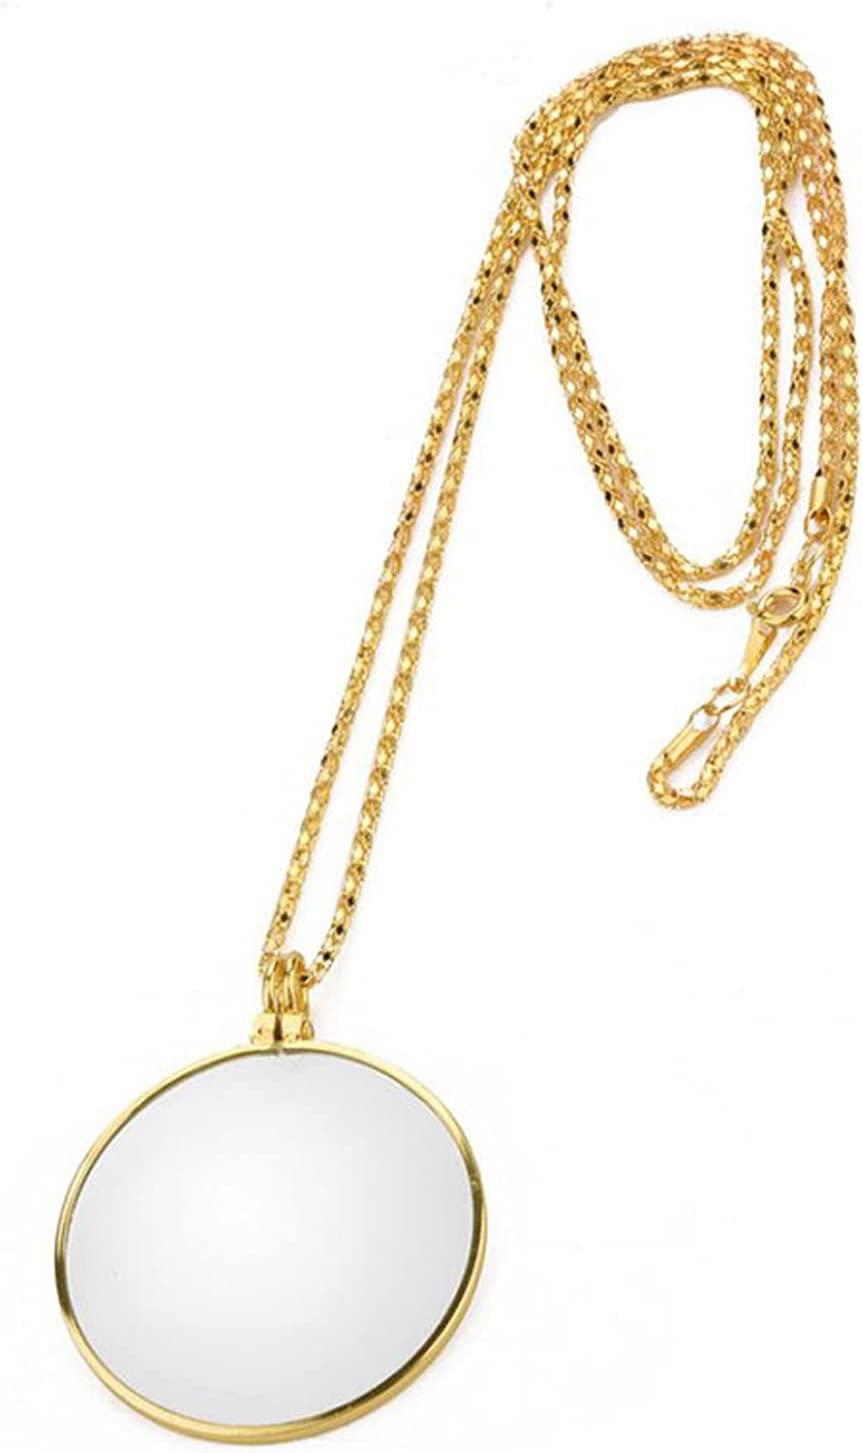 5X Necklace Magnifying Glass Golden Magnifier Vintage P San Francisco Philadelphia Mall Mall